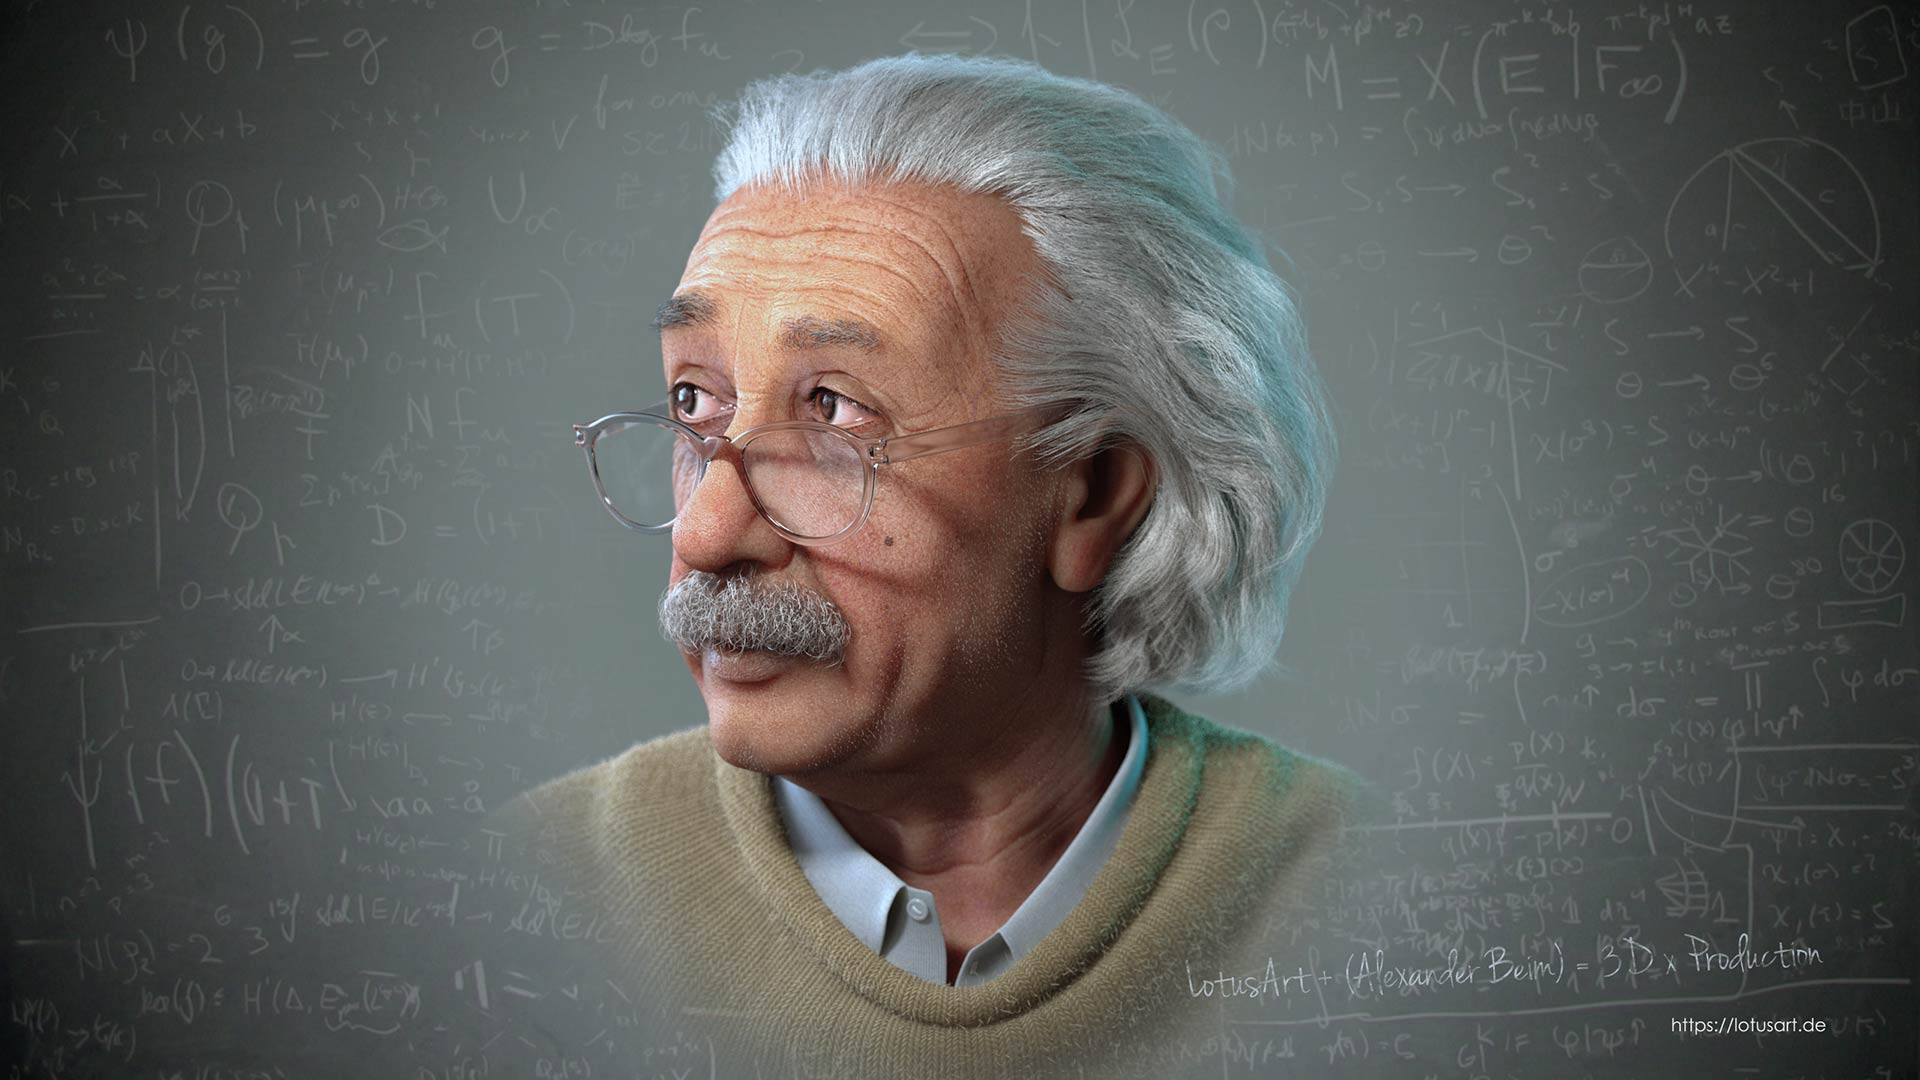 albert_einstein_3d_model_rigged_animation_head_image Albert Einstein 3D Porträt für ein Hologram